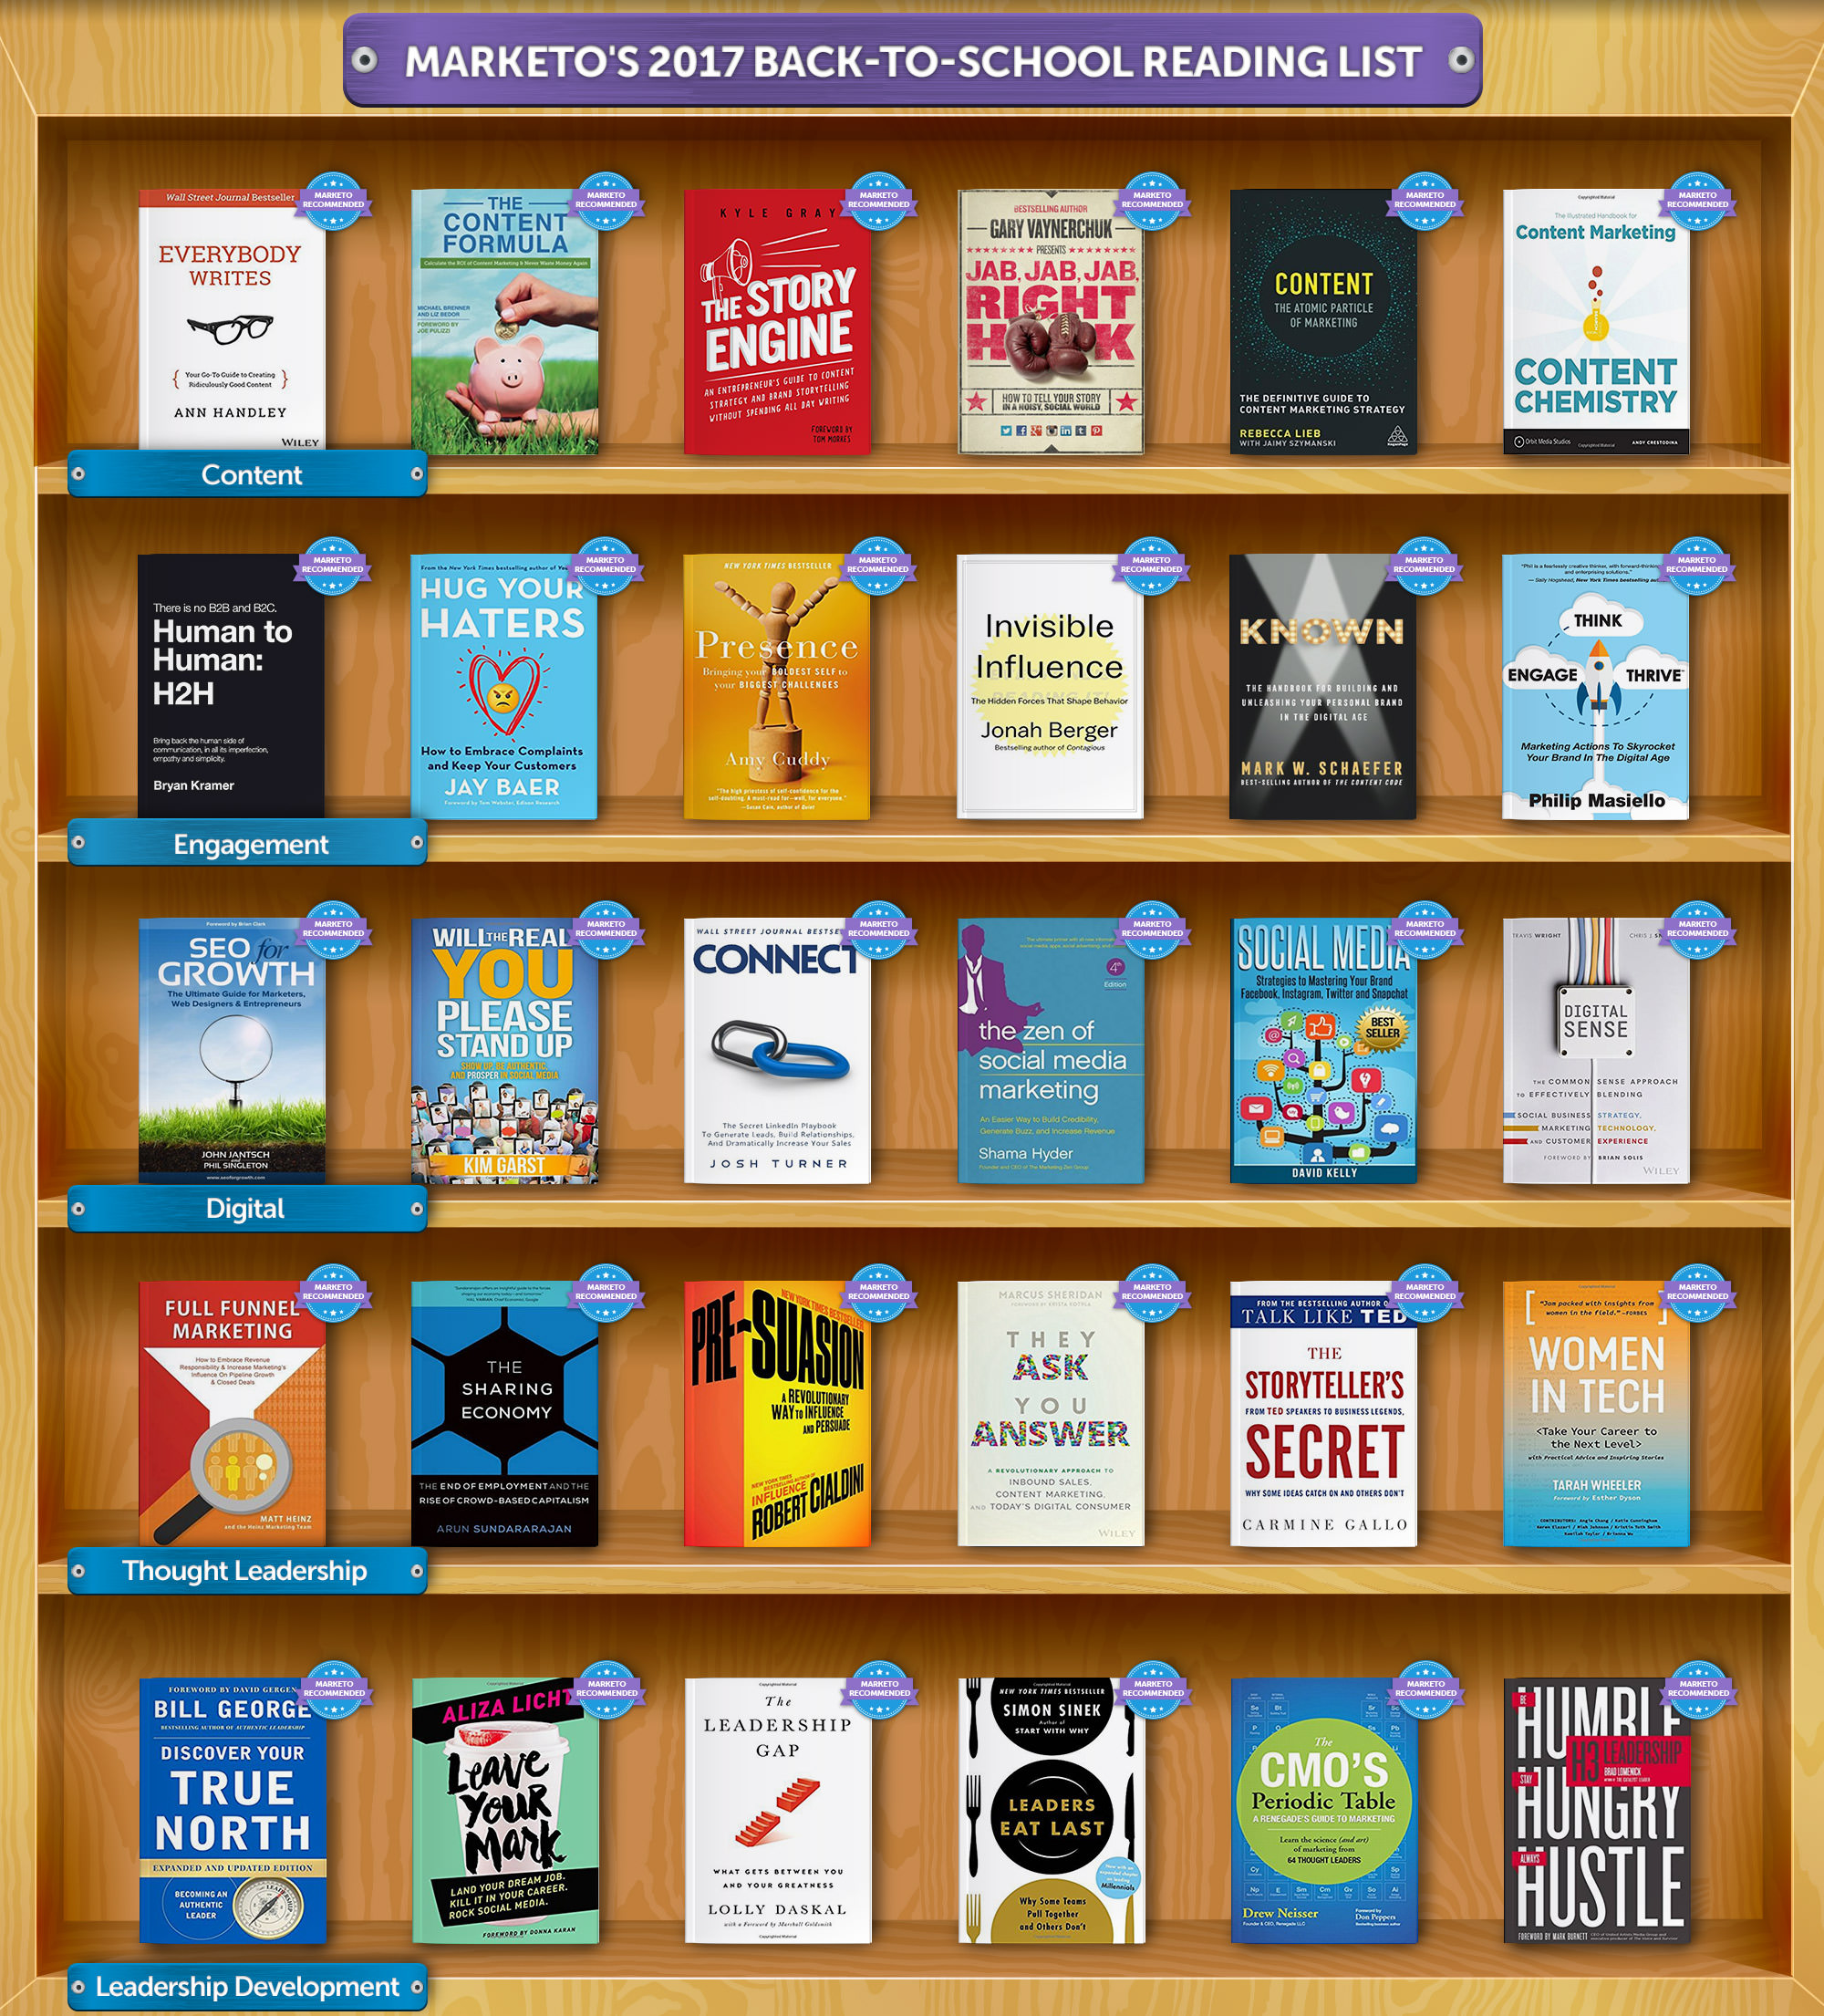 back-to-School Reading List _Marketo